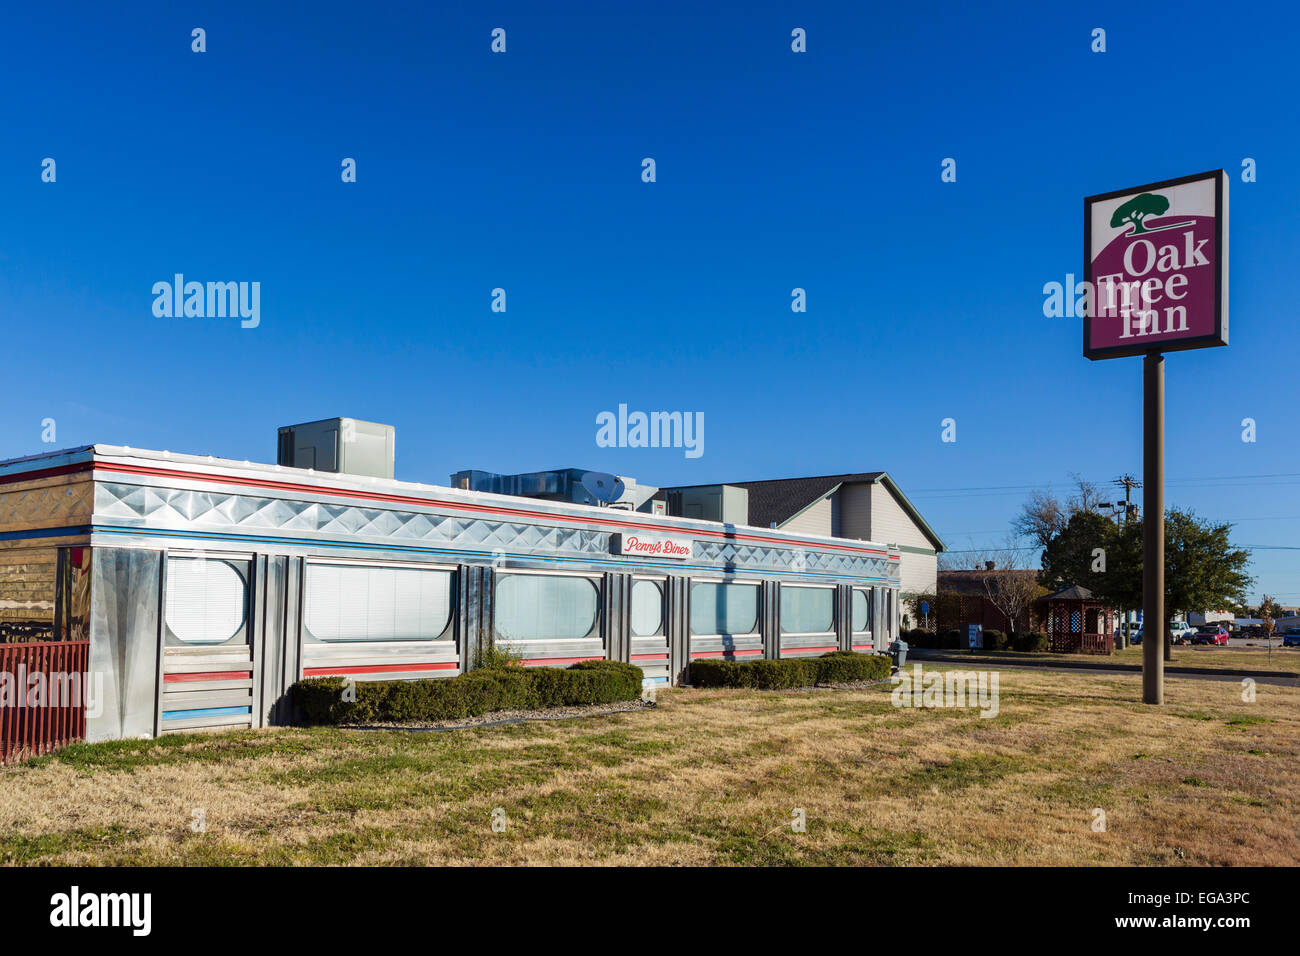 Penny's Diner at the Oak Tree Inn, a traditional railroad car style diner in Alpine, Texas, USA - Stock Image